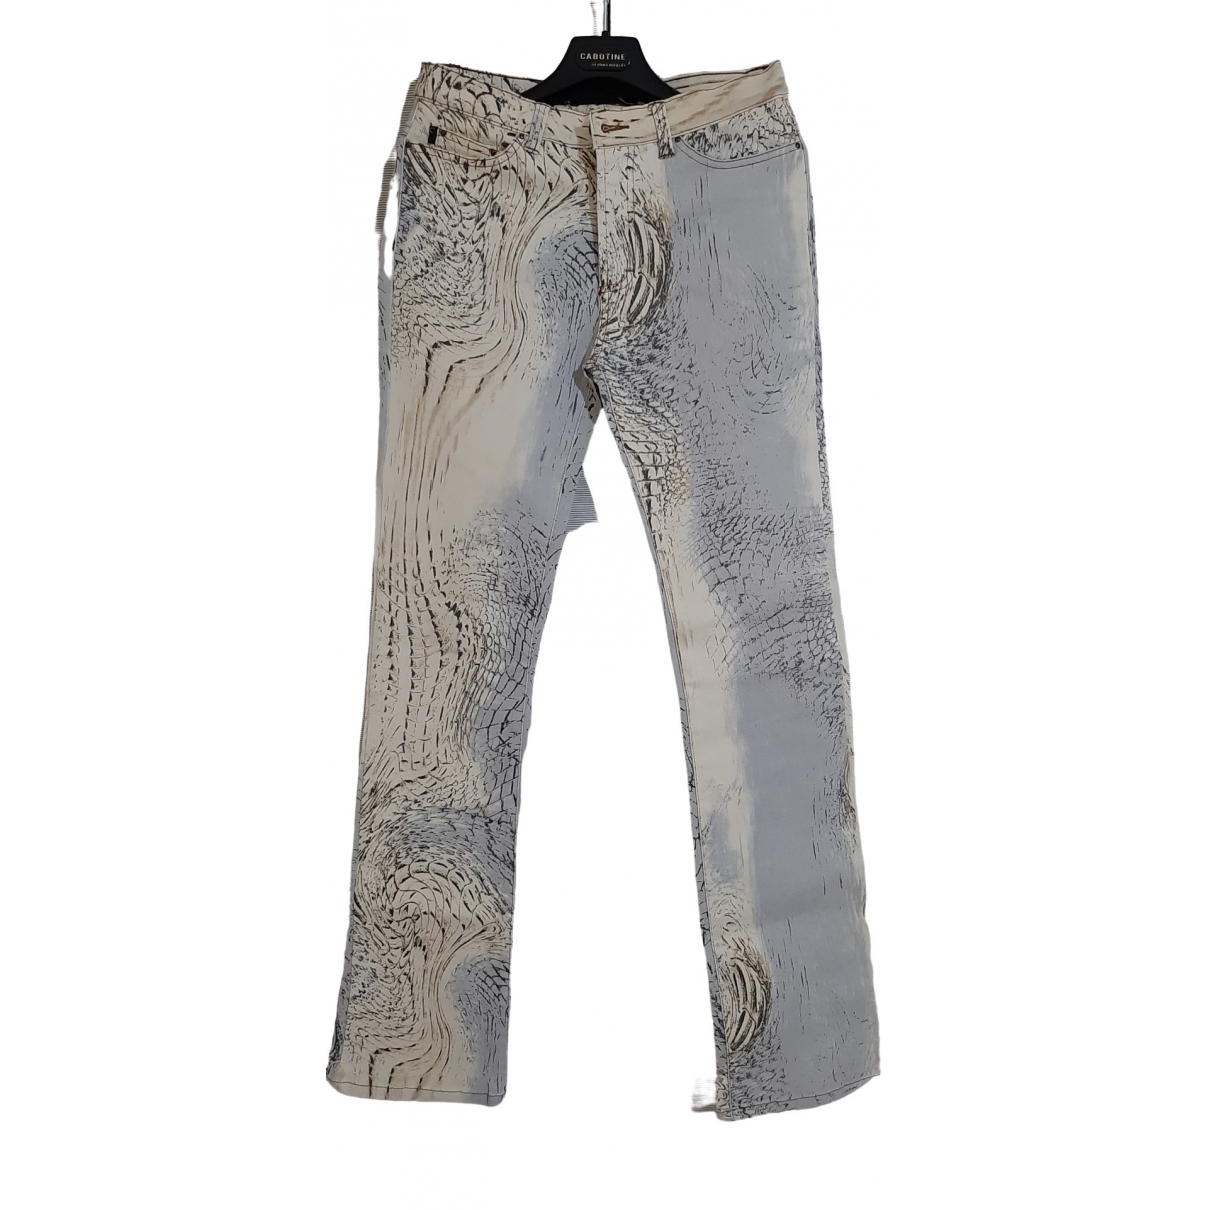 Just Cavalli \N Cotton - elasthane Jeans for Women 44 FR